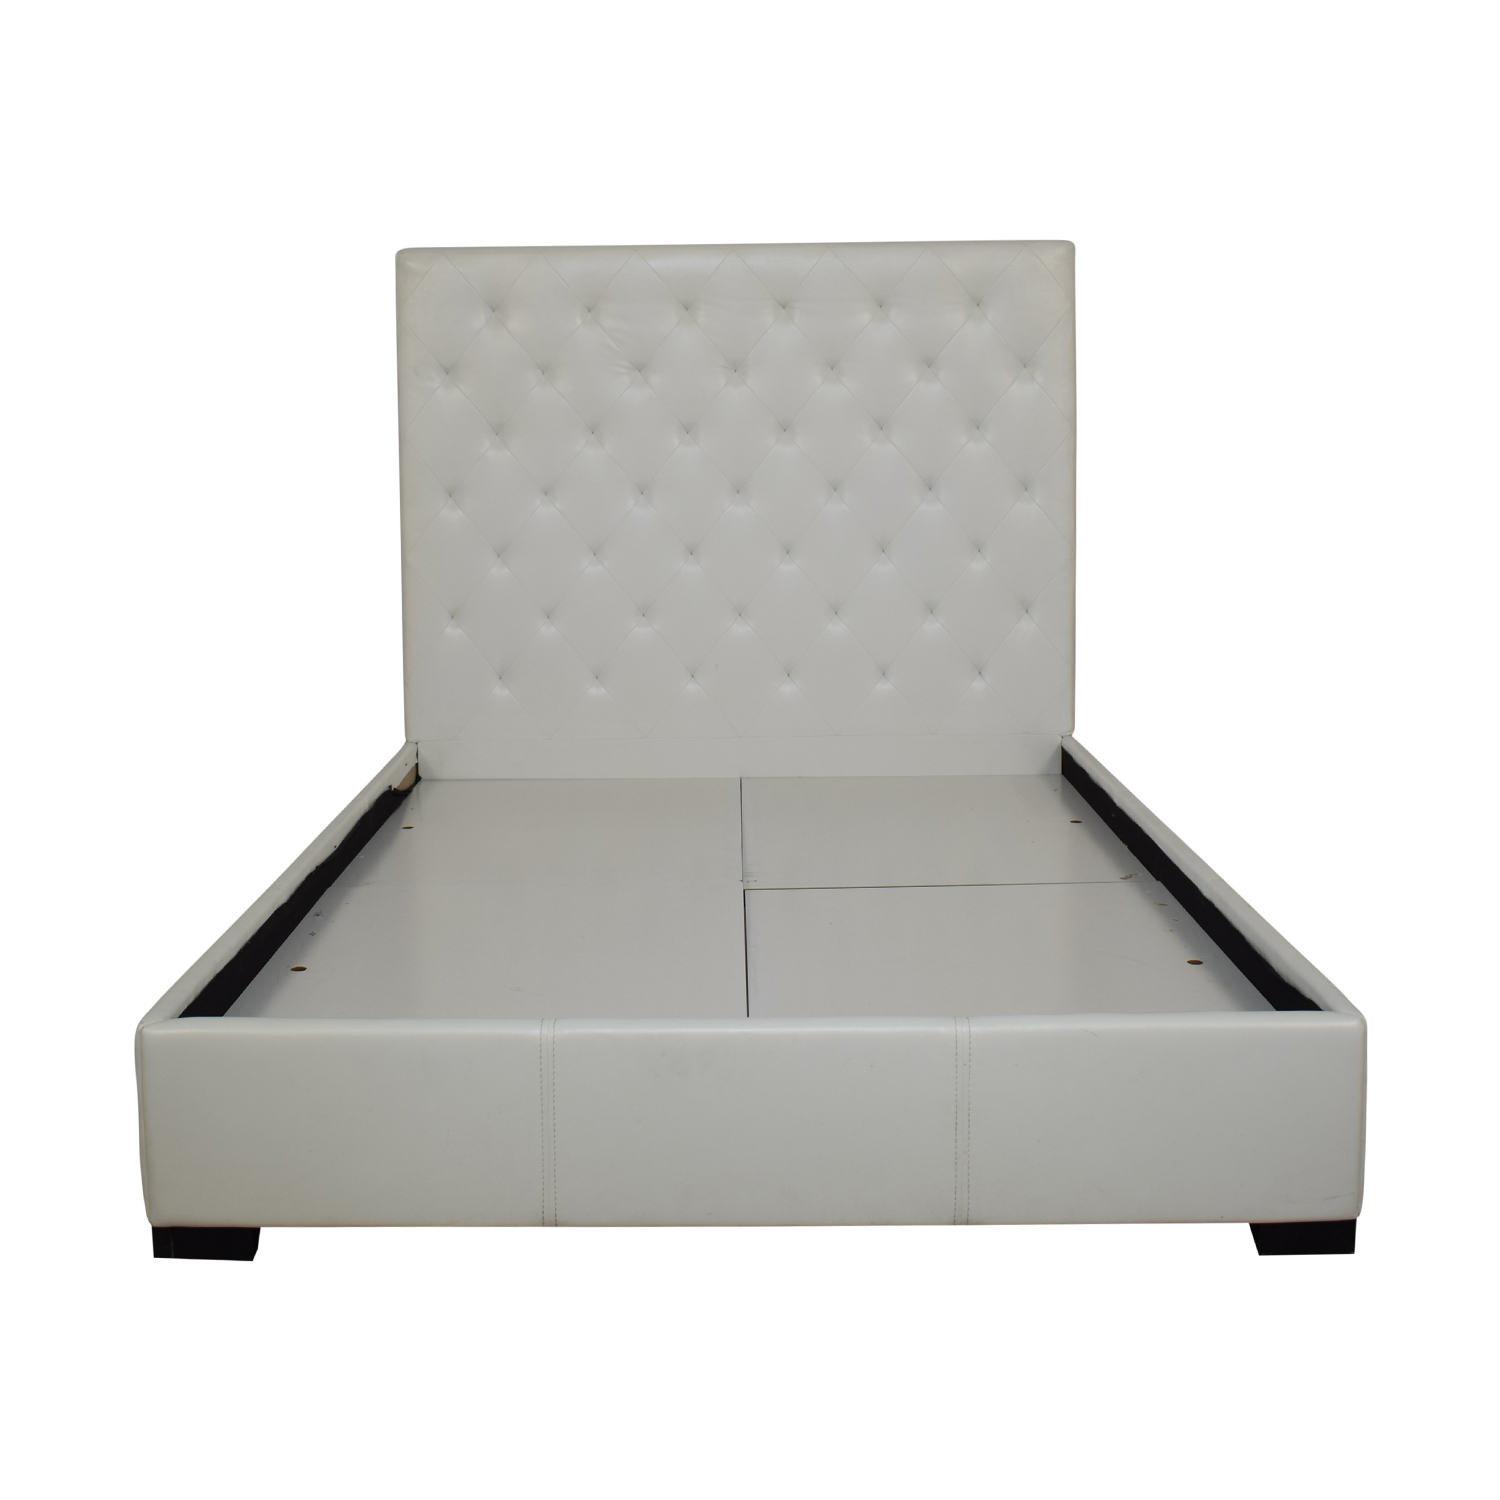 Modani White Eco Leather Queen Bed / Bed Frames